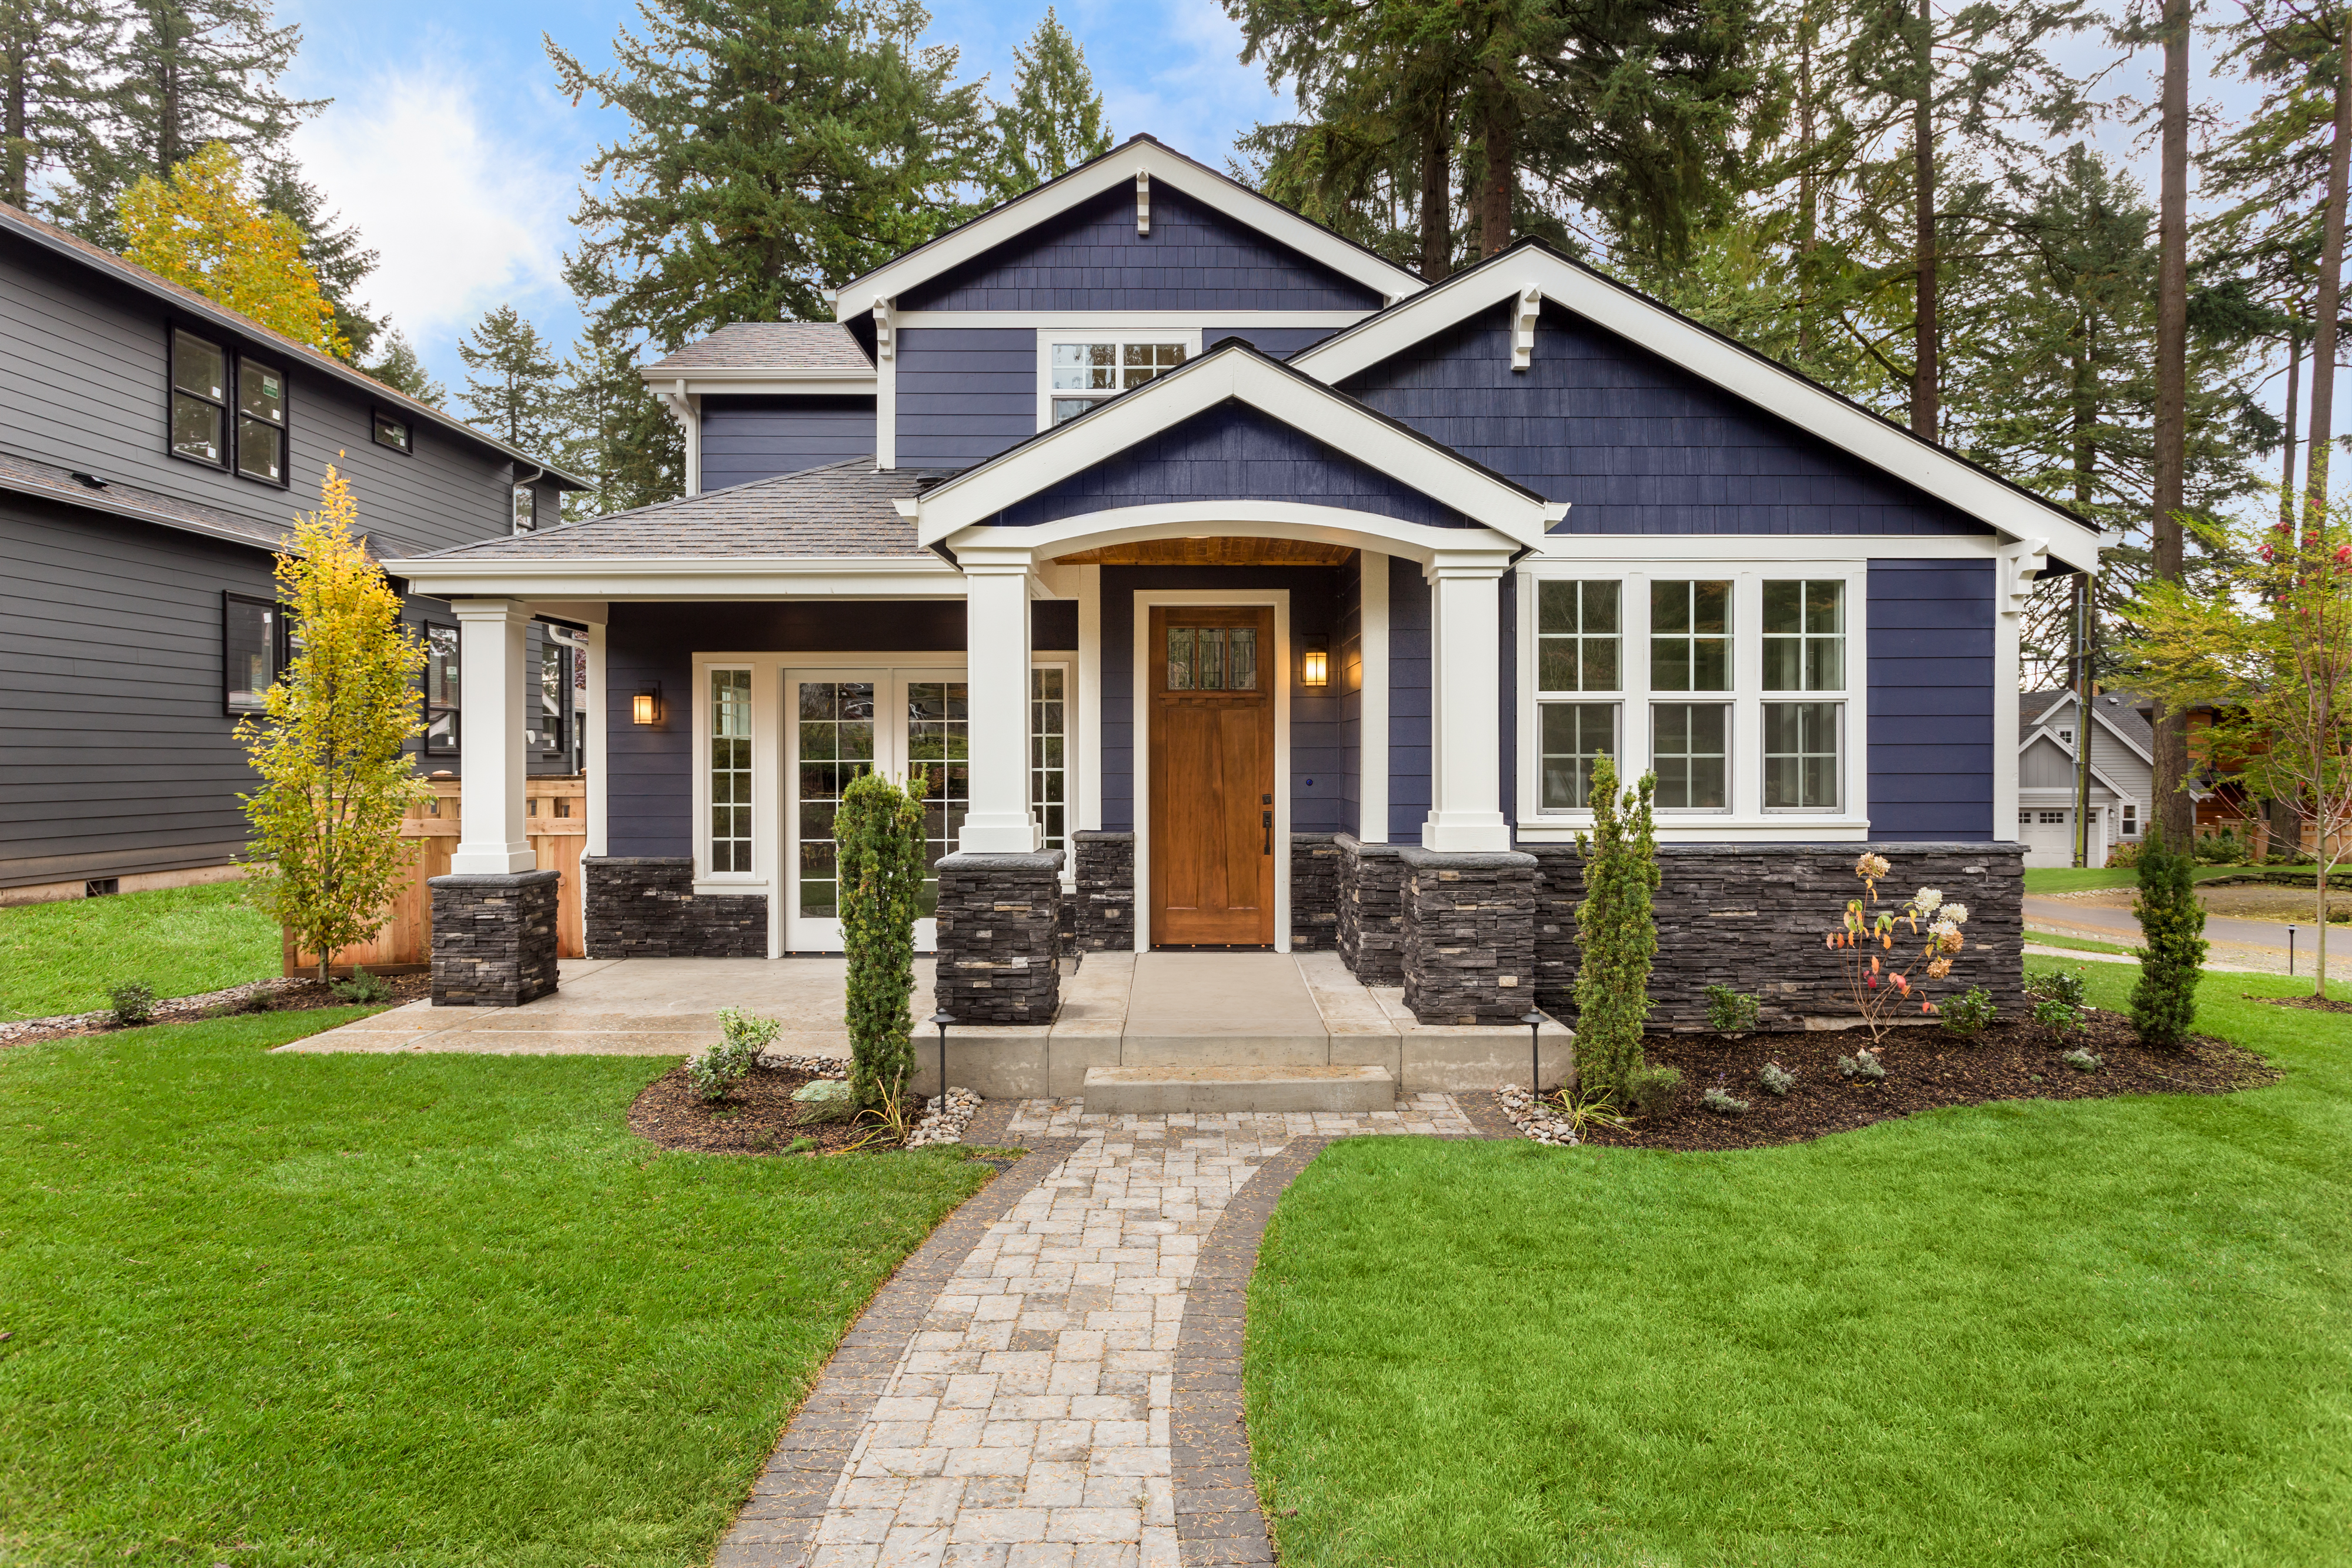 Beautiful exterior of newly built luxury home.